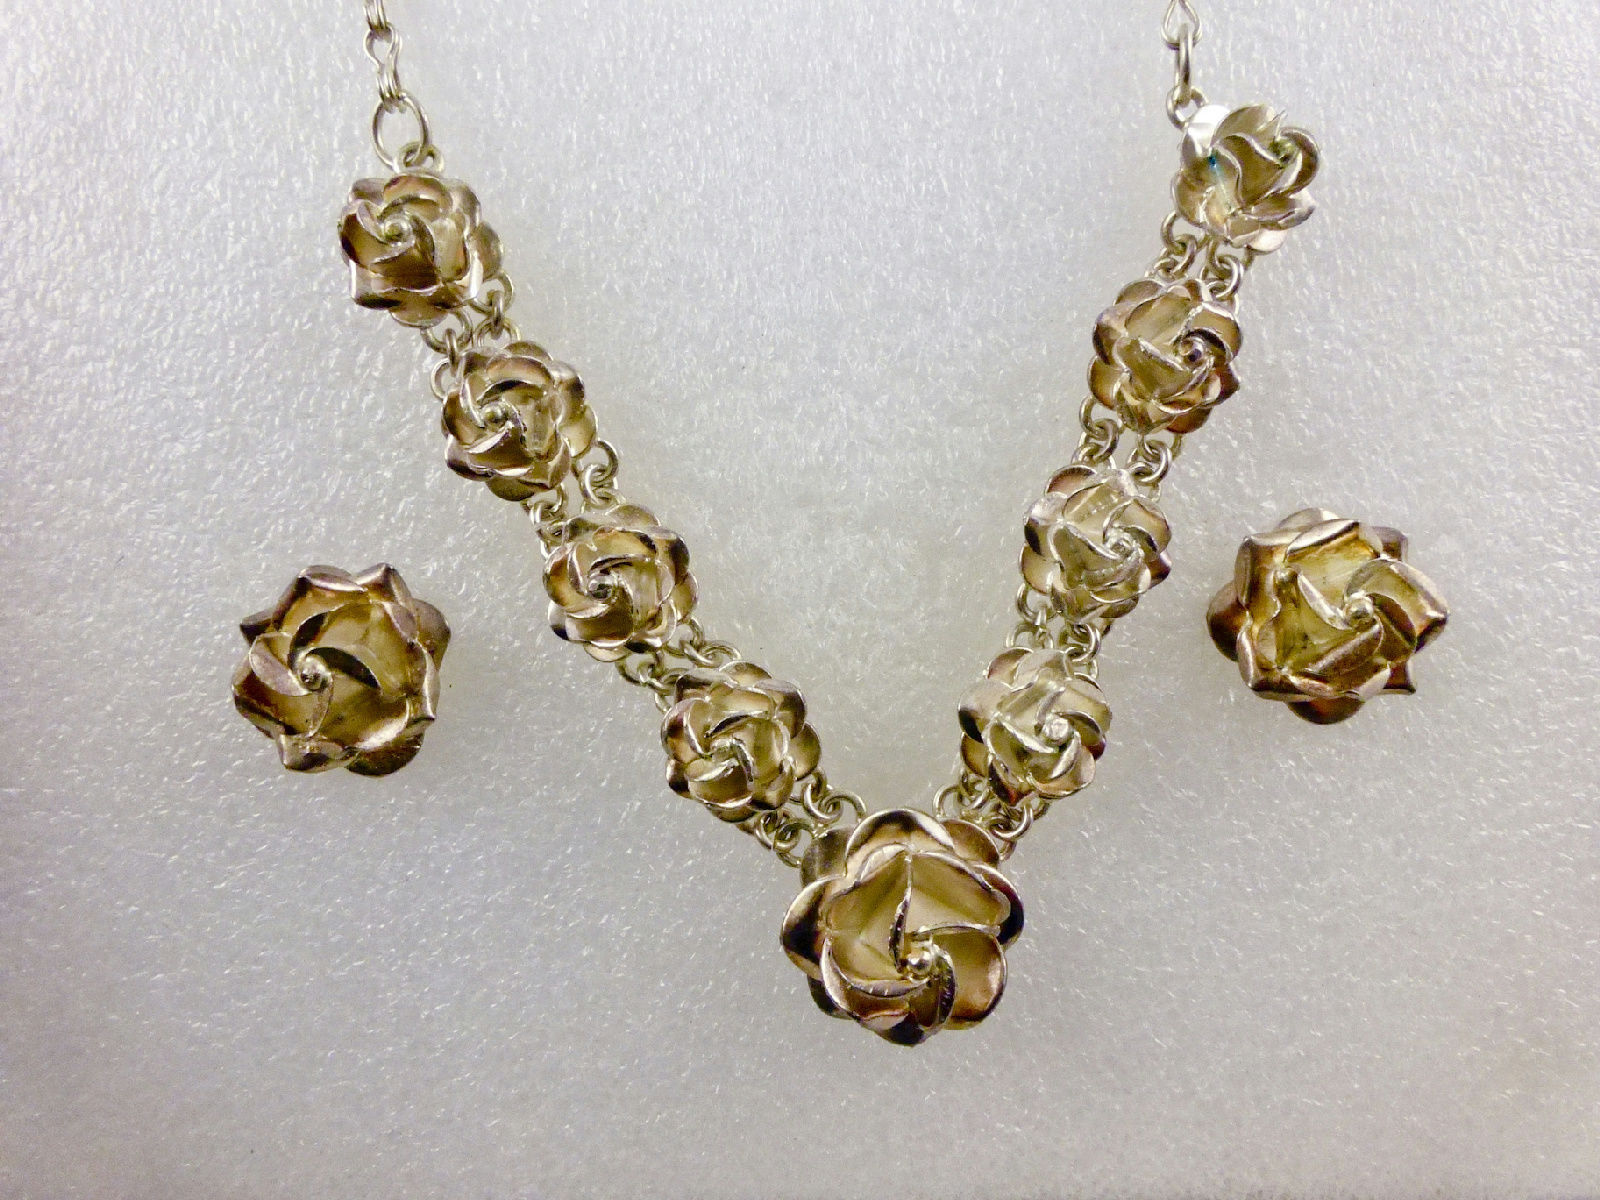 ROSE Flower Sterling Silver Earrings Necklace Jewelry Set - Vintage MEXICO